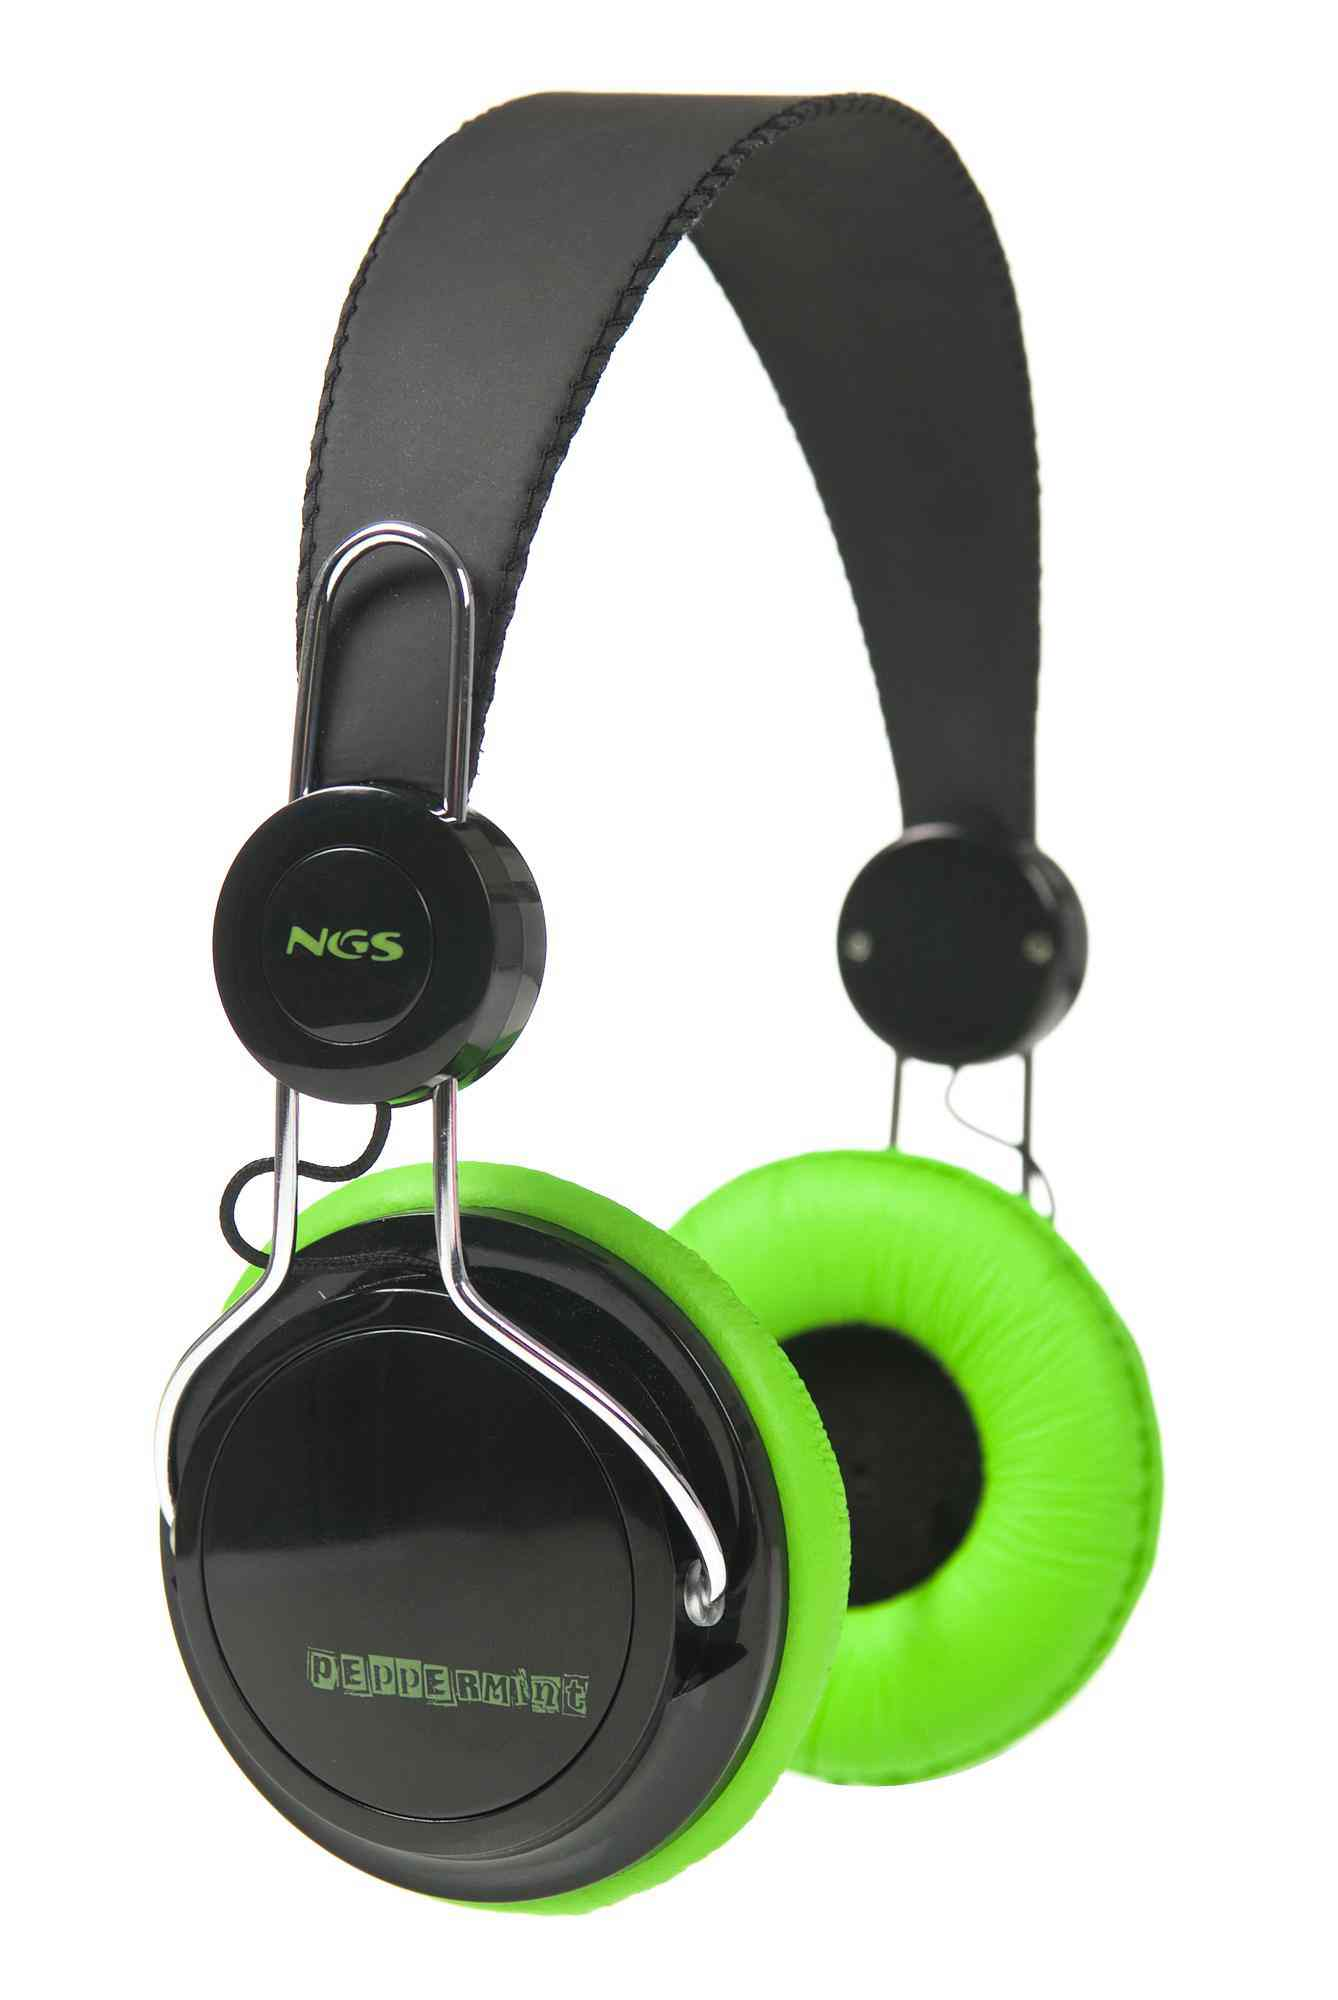 Auriculares Ngs Peppermint Negroverde